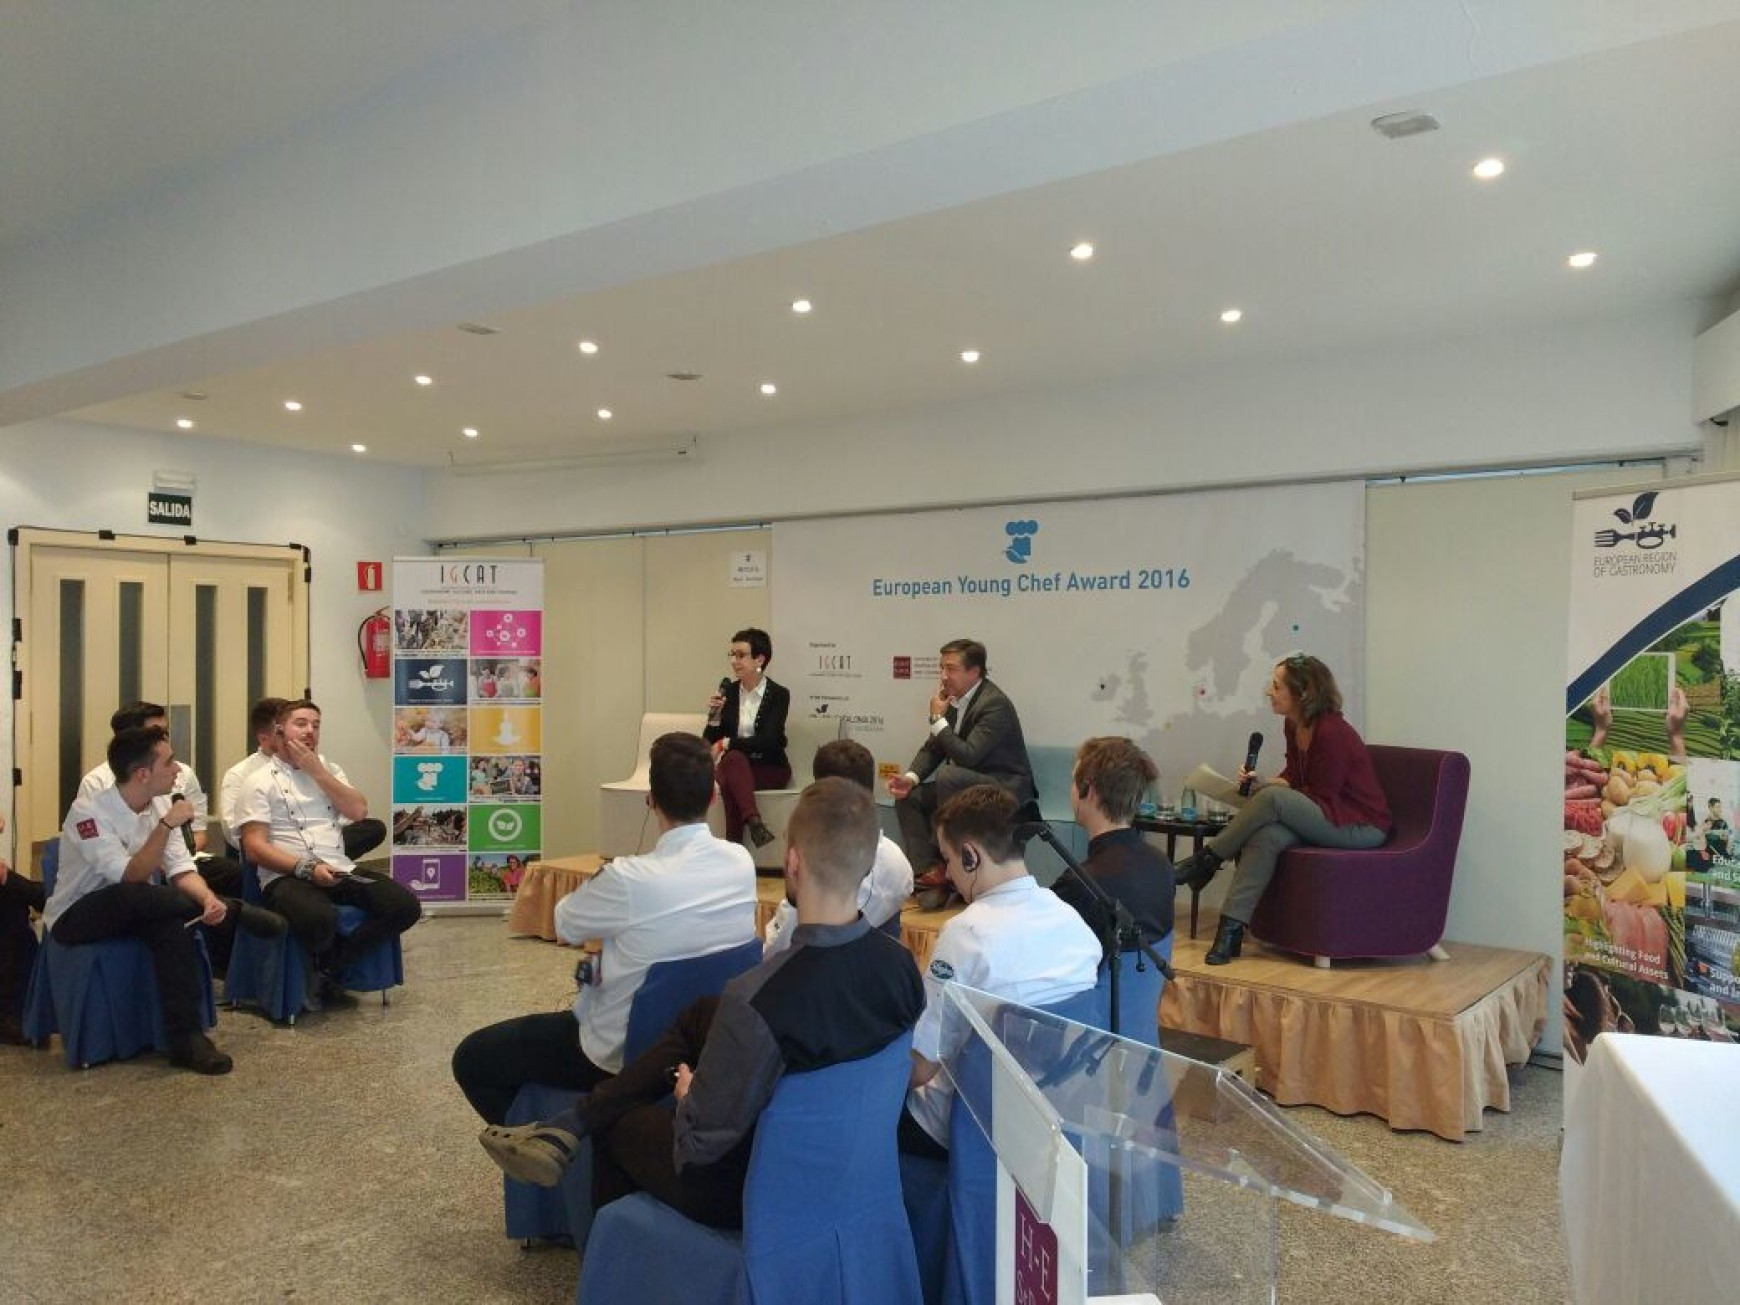 Mentoring European Young Chefs – Round Table with celebrity chefs Joan Roca and Carme Ruscalleda